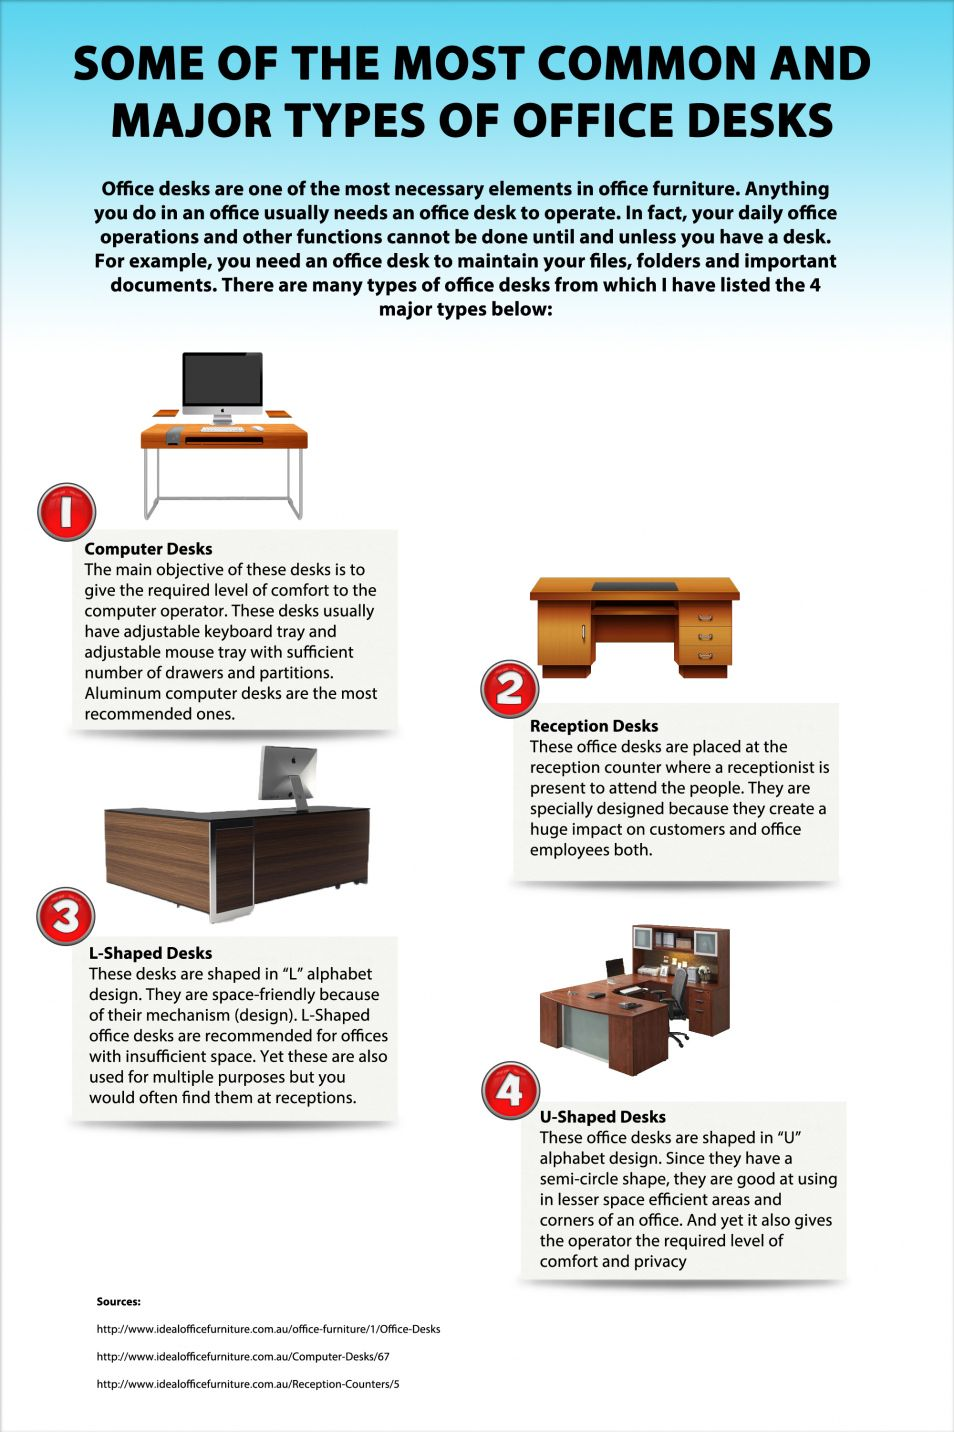 Office Desk Types   Best Home Office Furniture Check More At  Http://michael Malarkey.com/office Desk Types/